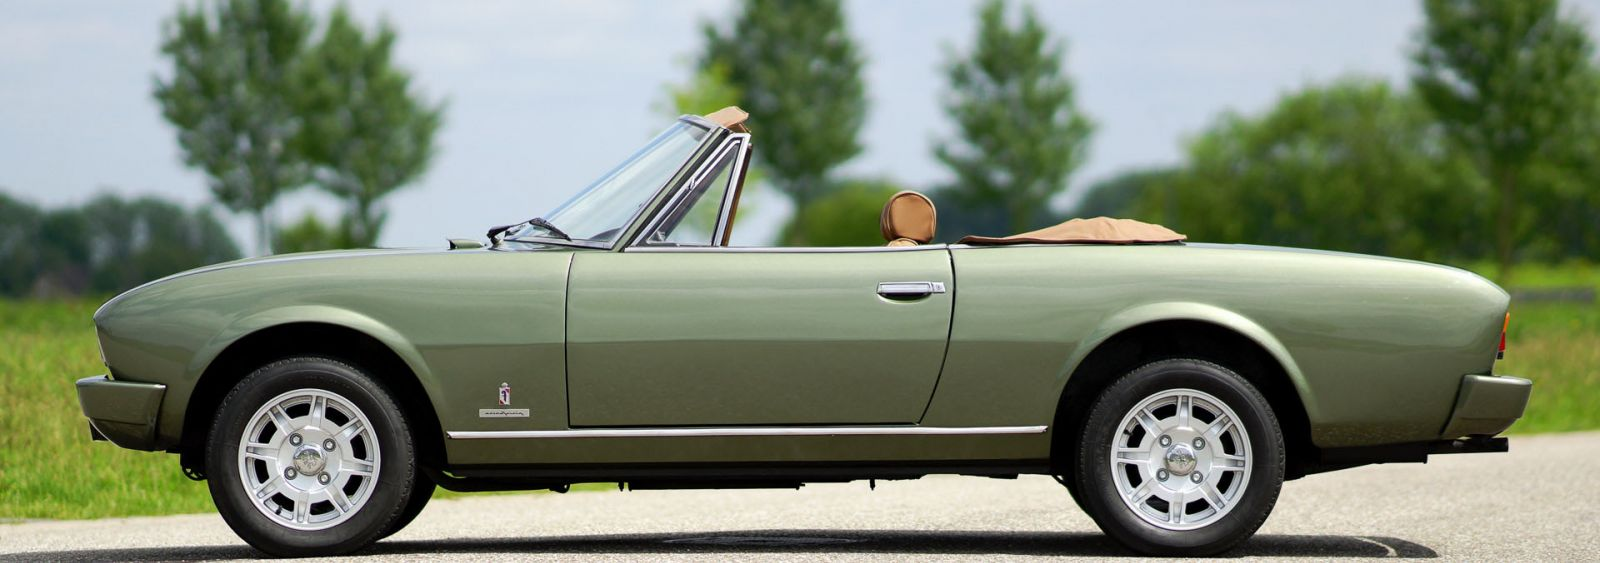 Peugeot 504 Pininfarina Cabriolet 1979 Welcome To